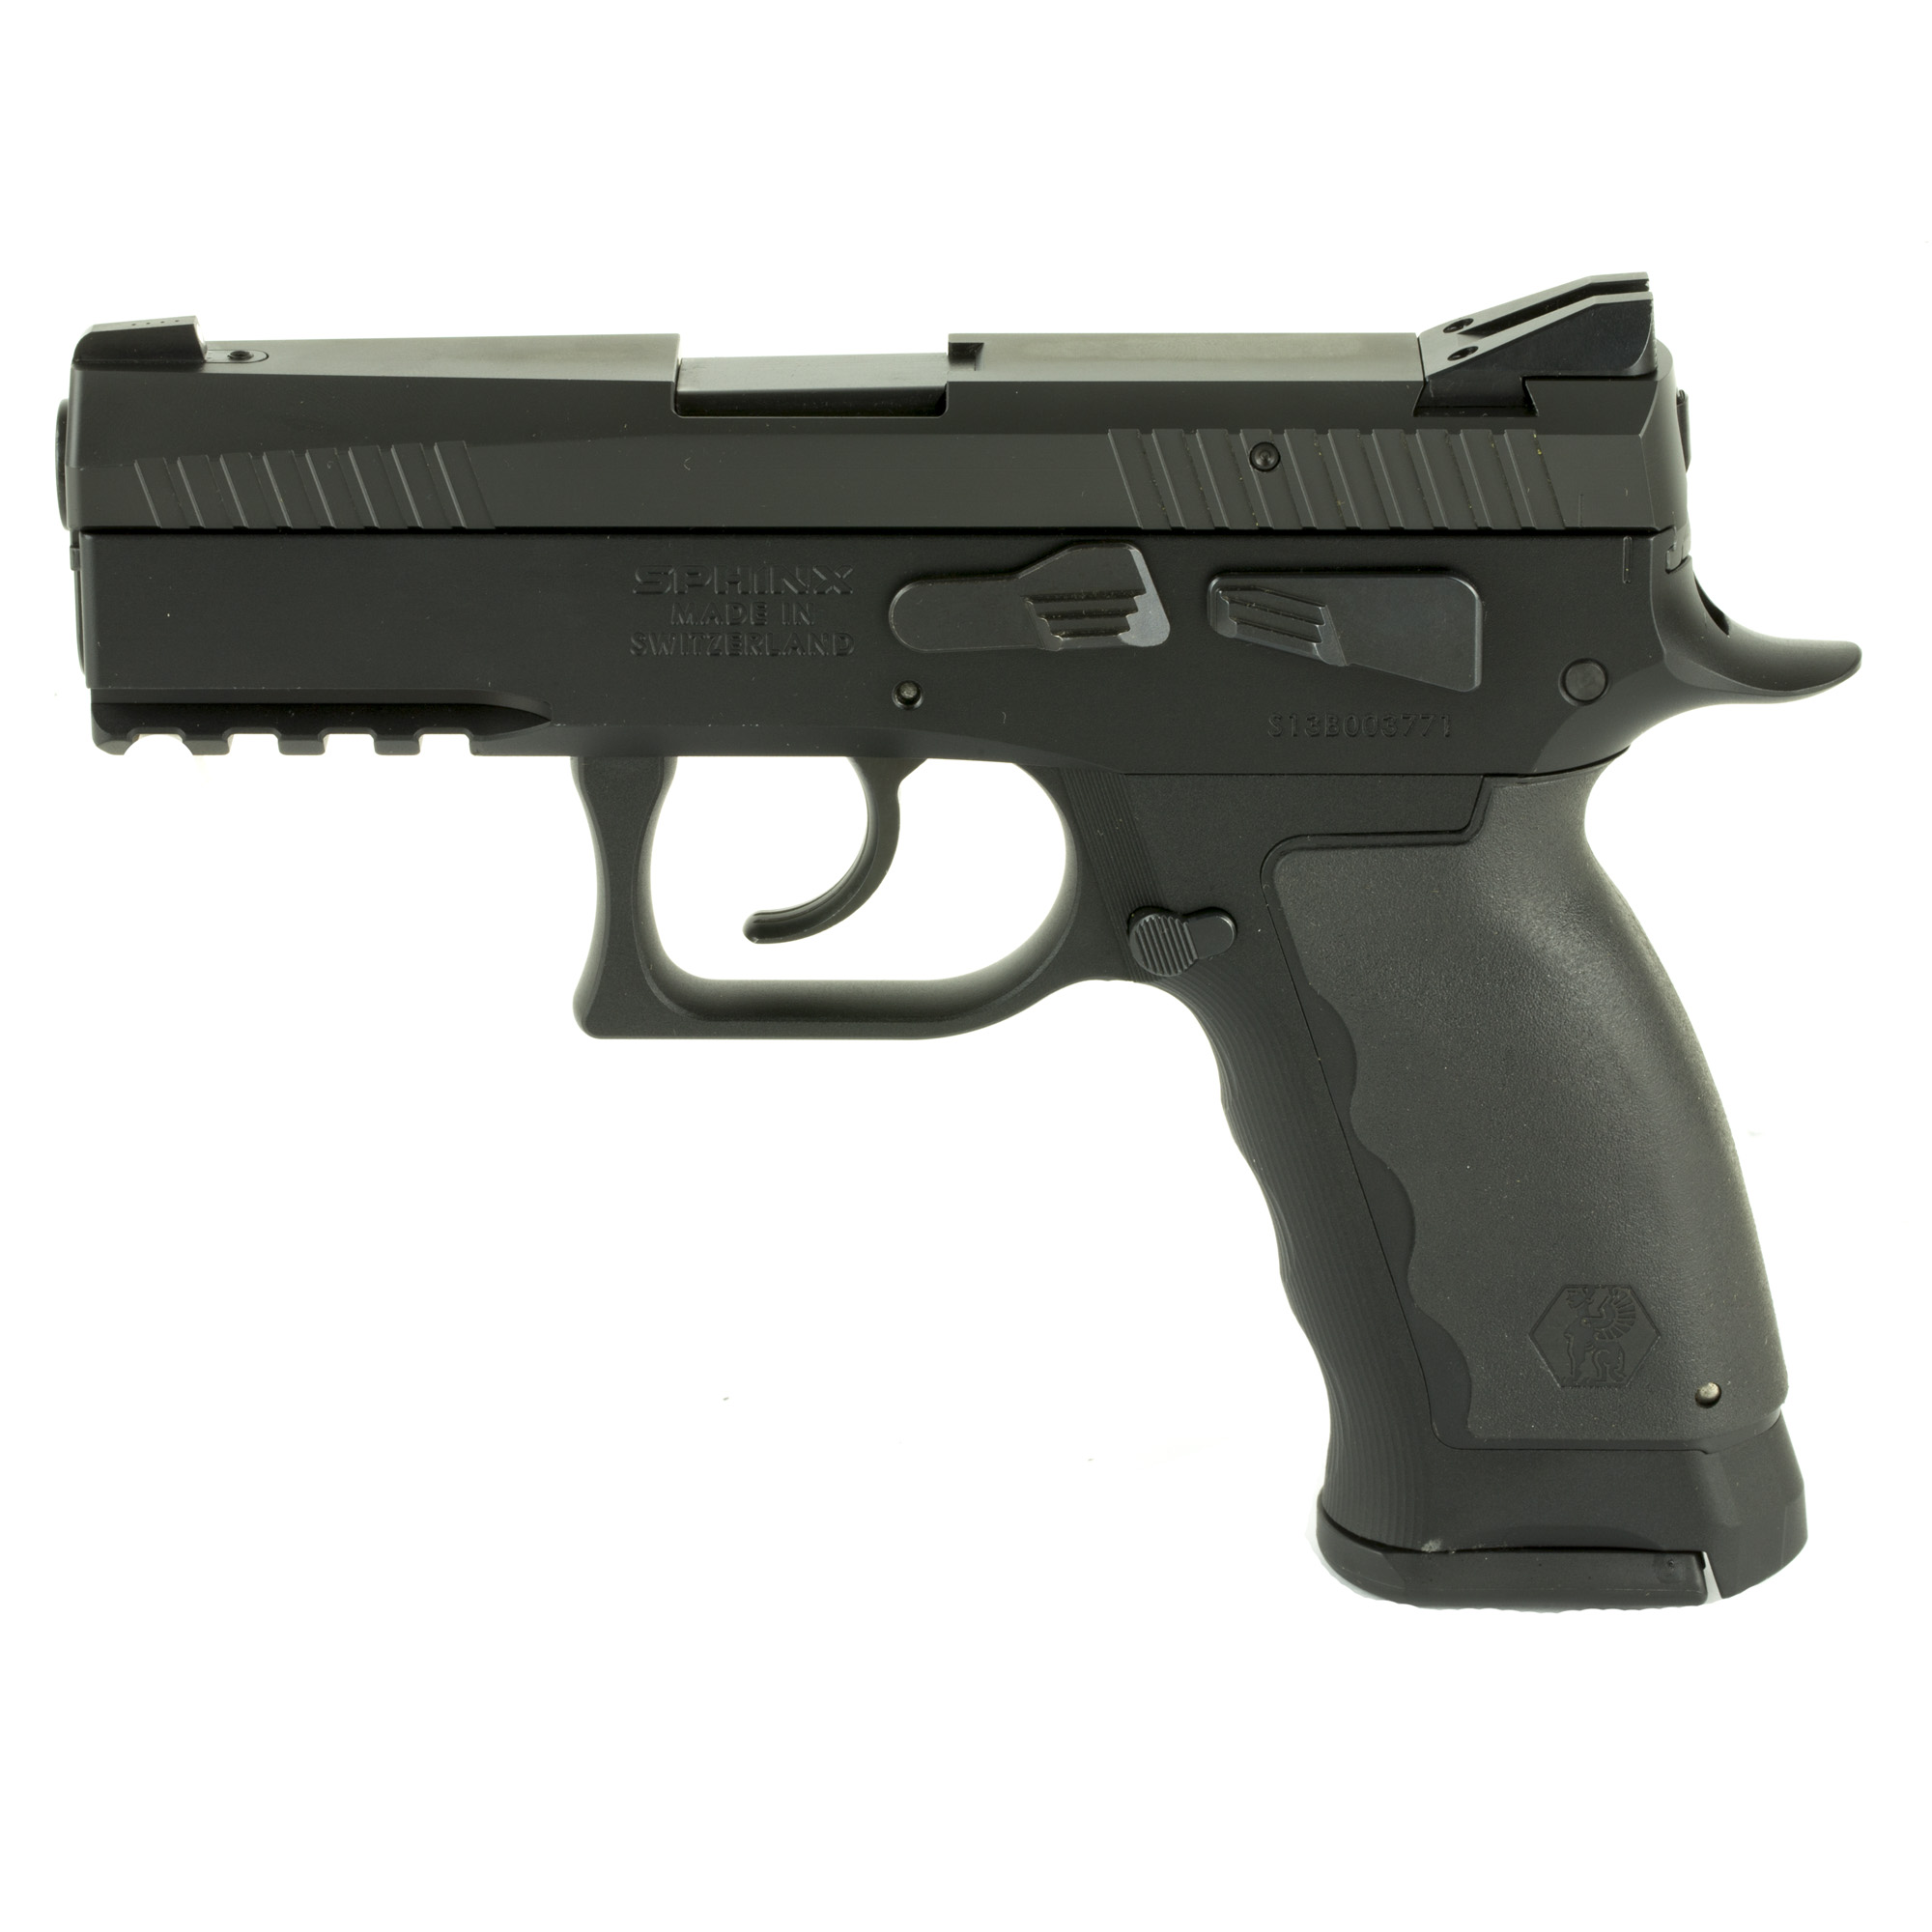 The enlarged grip of the SPHINX SDP Compact Duty provides ample space for larger hands to get a full solid grip of the firearm for maximum comfort and control. The smooth take up and clean break of the competition inspired trigger gives you accurate and precise control of each shot.